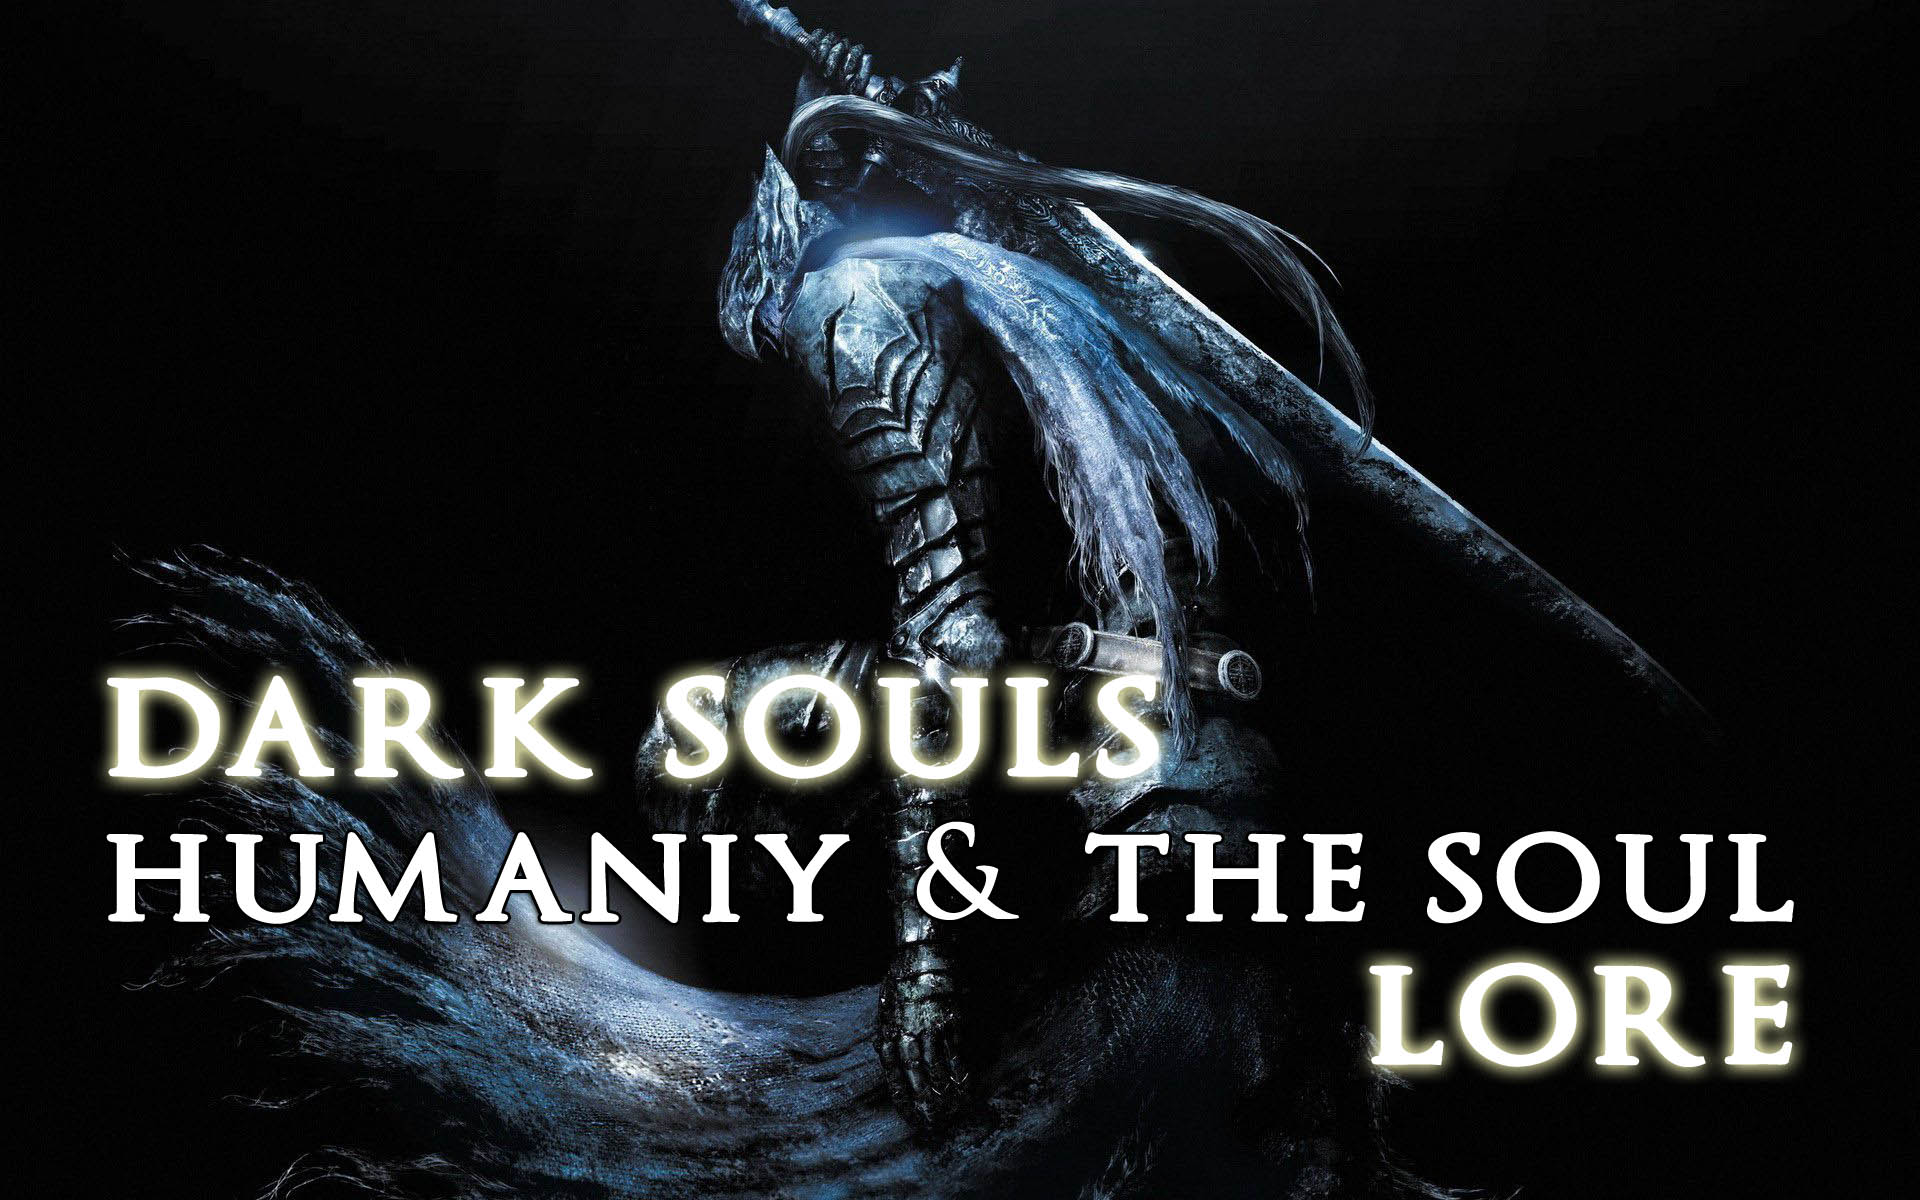 Dark SoulsThe Spirituality and Nature of Humanity and the